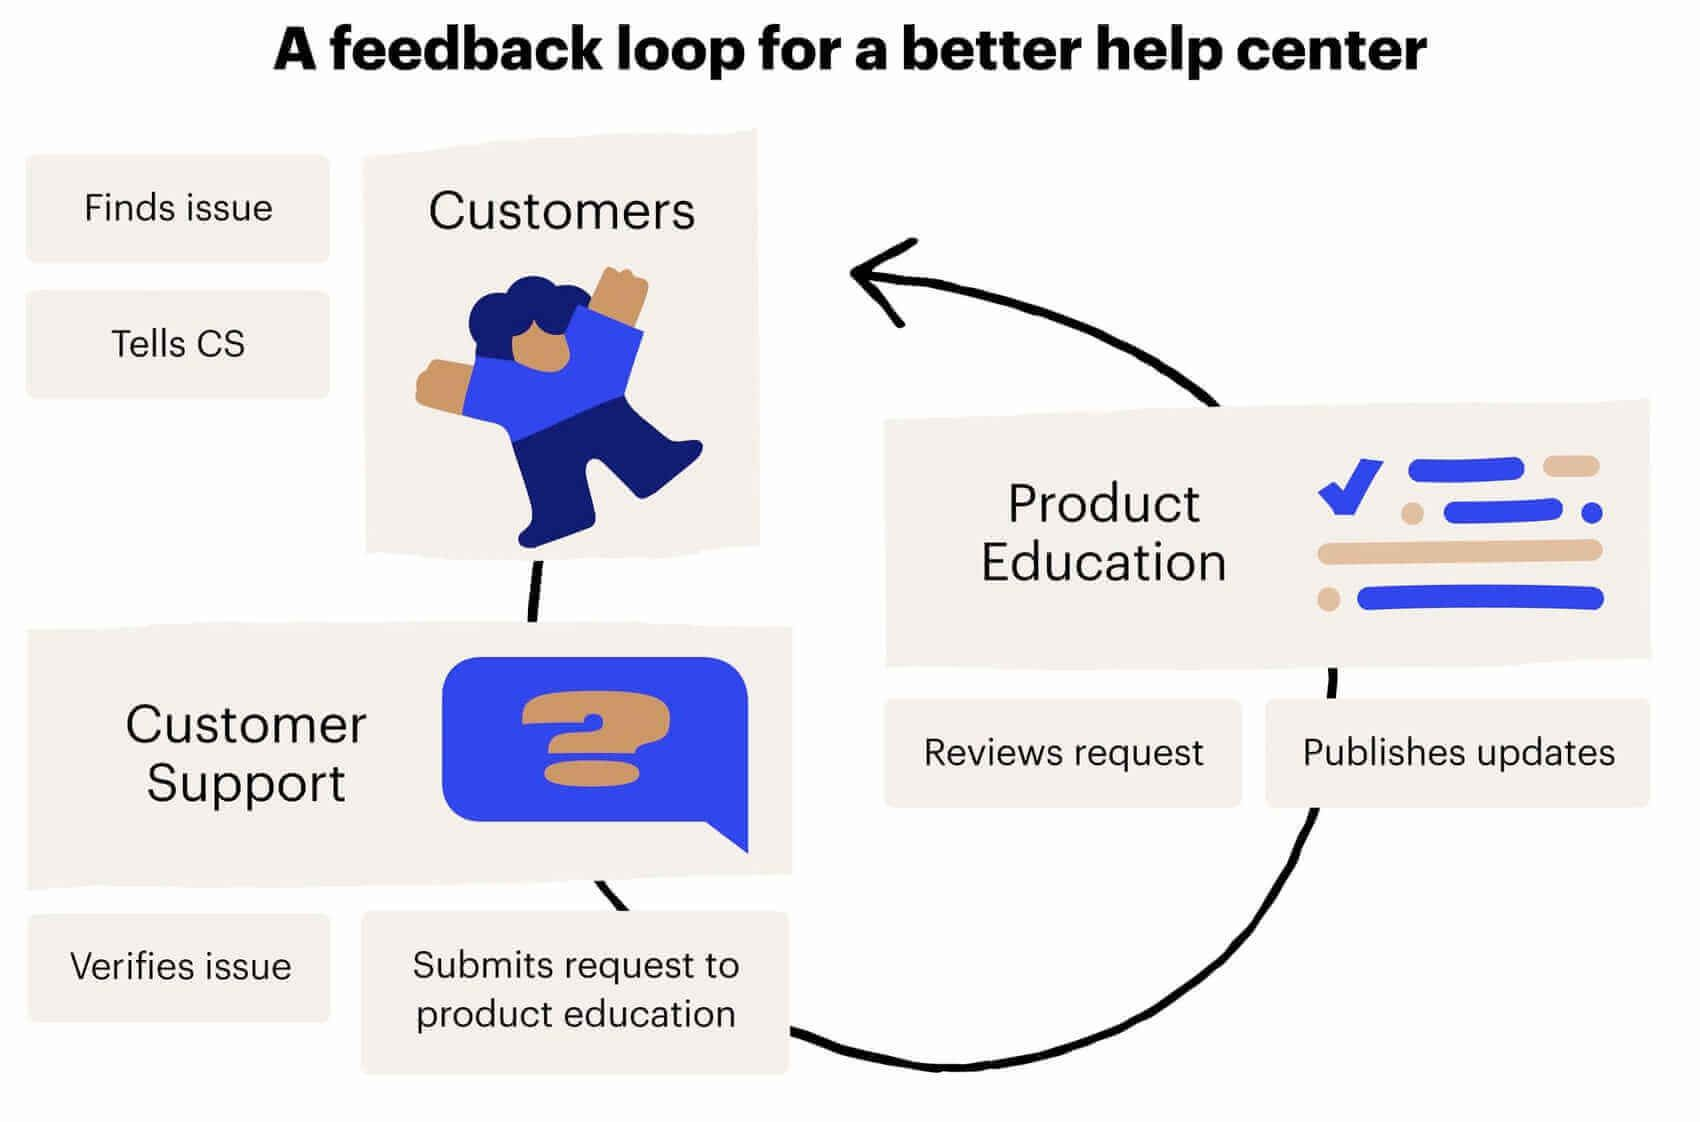 A feedback loop for a better help center